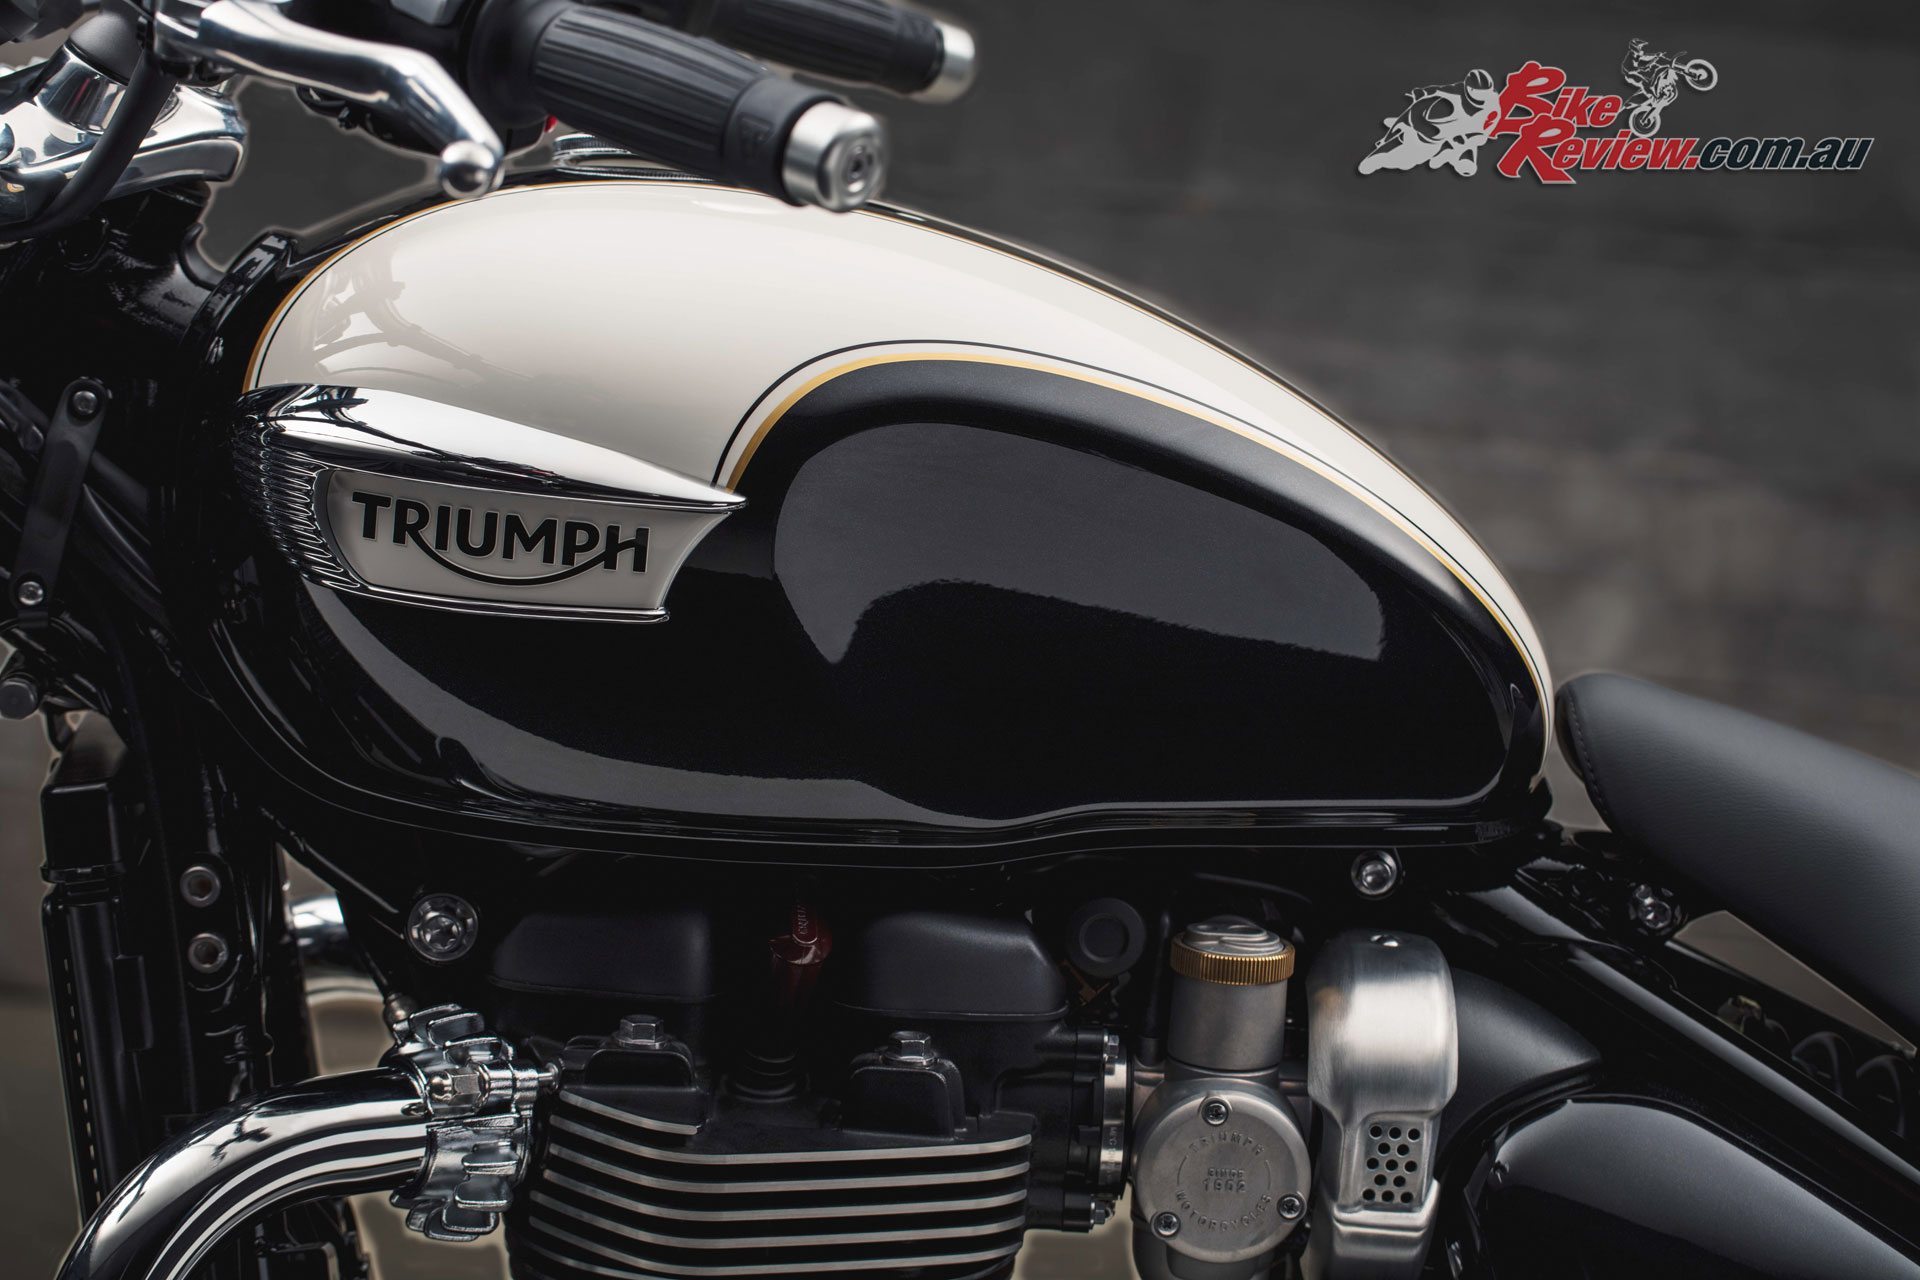 Featuring iconic Triumph, British and Bobber DNA